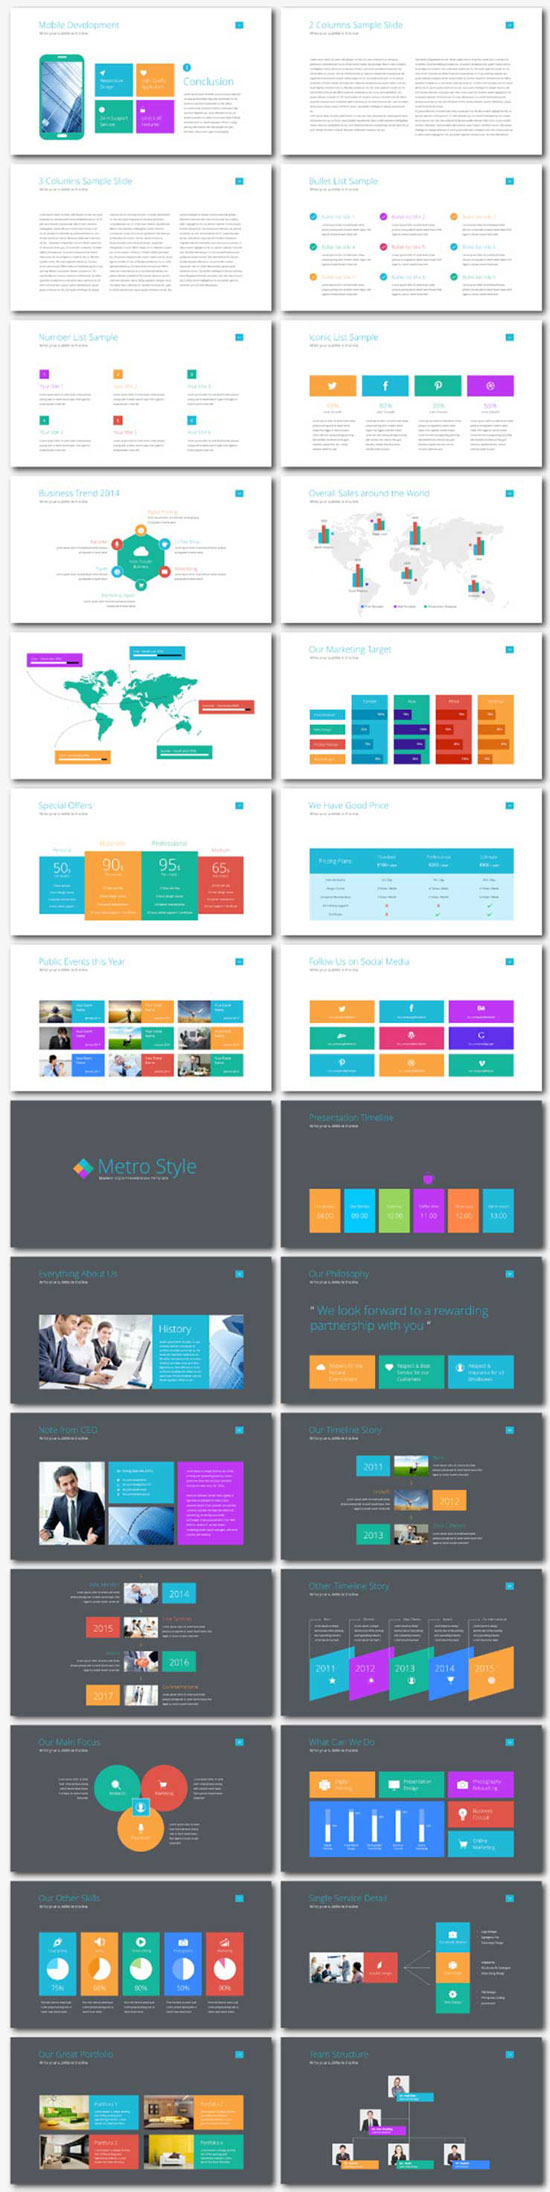 Free PowerPoint templates collection no. 10